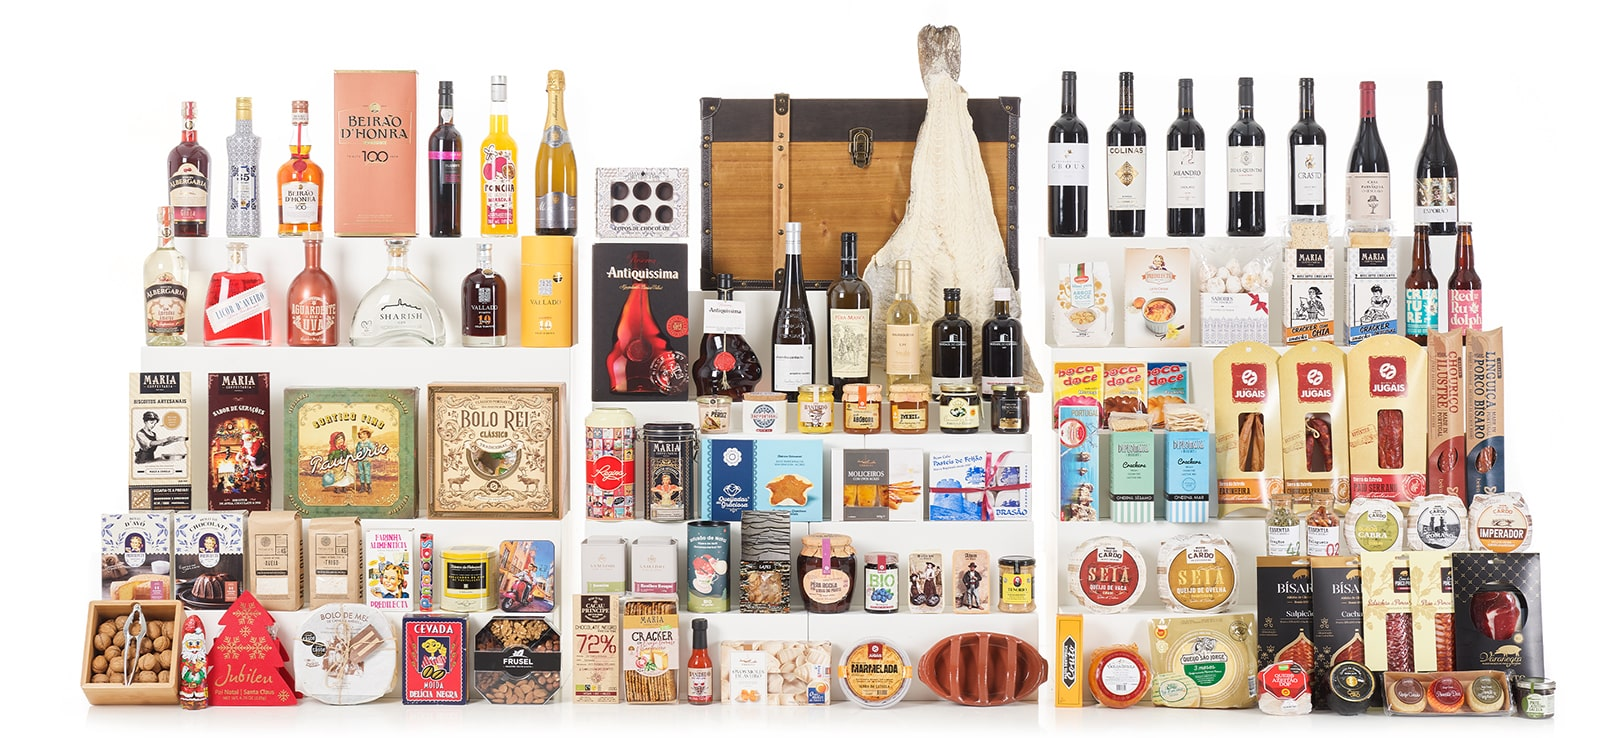 Portugal Christmas Hamper Lista